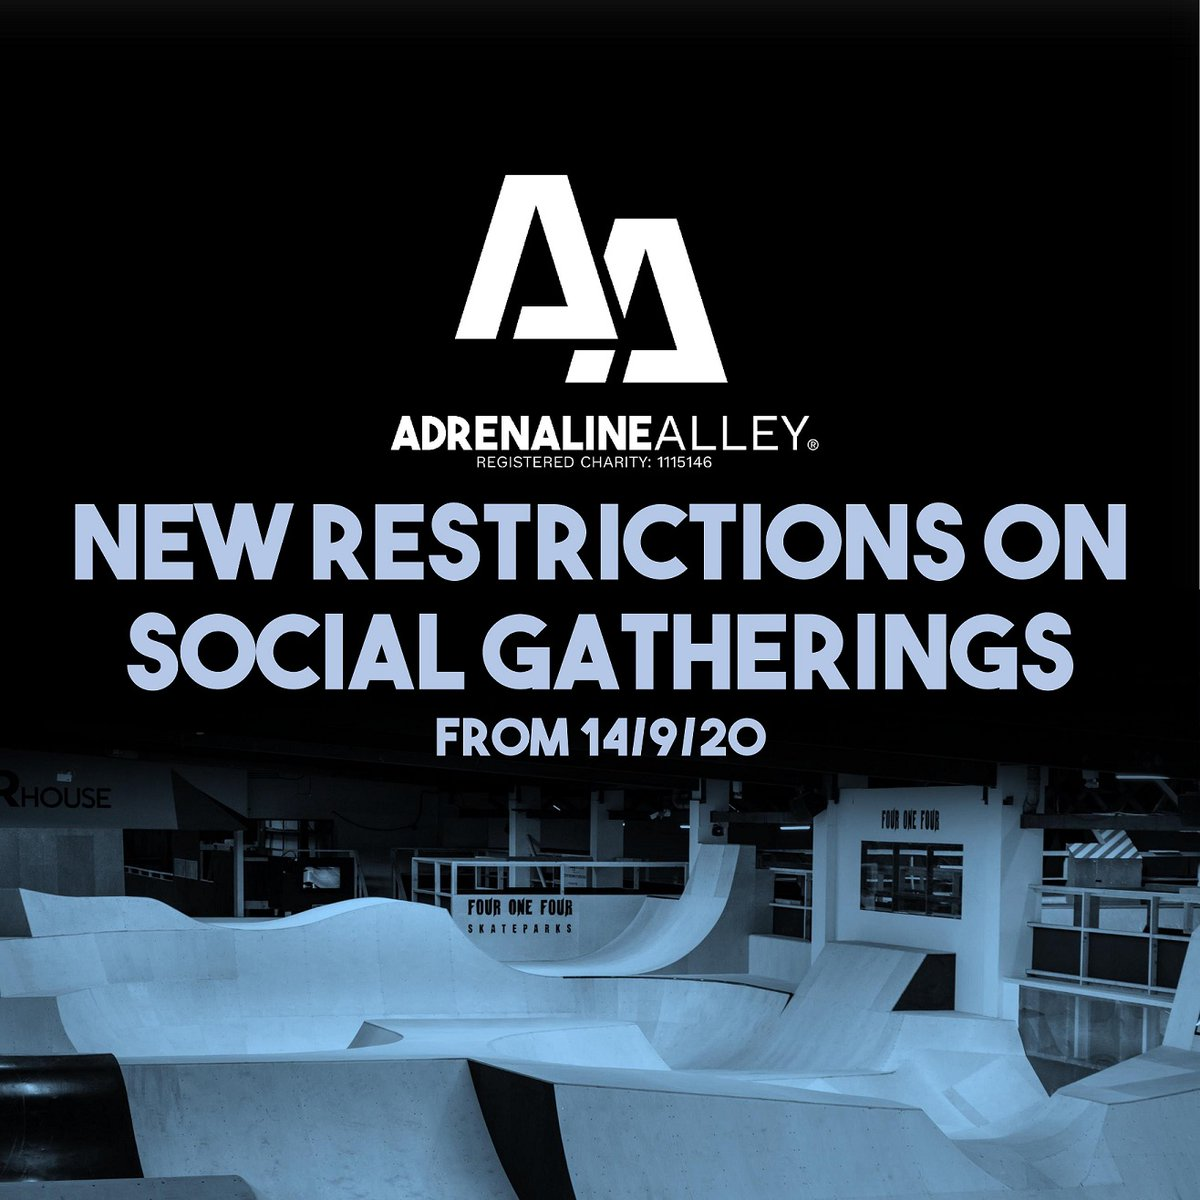 NEW RESTRICTIONS ON SOCIAL GATHERINGS FROM 14/9/2020  Please click link below to read⤵️ https://t.co/HZ8IkdRal8 https://t.co/27VLov1ciG